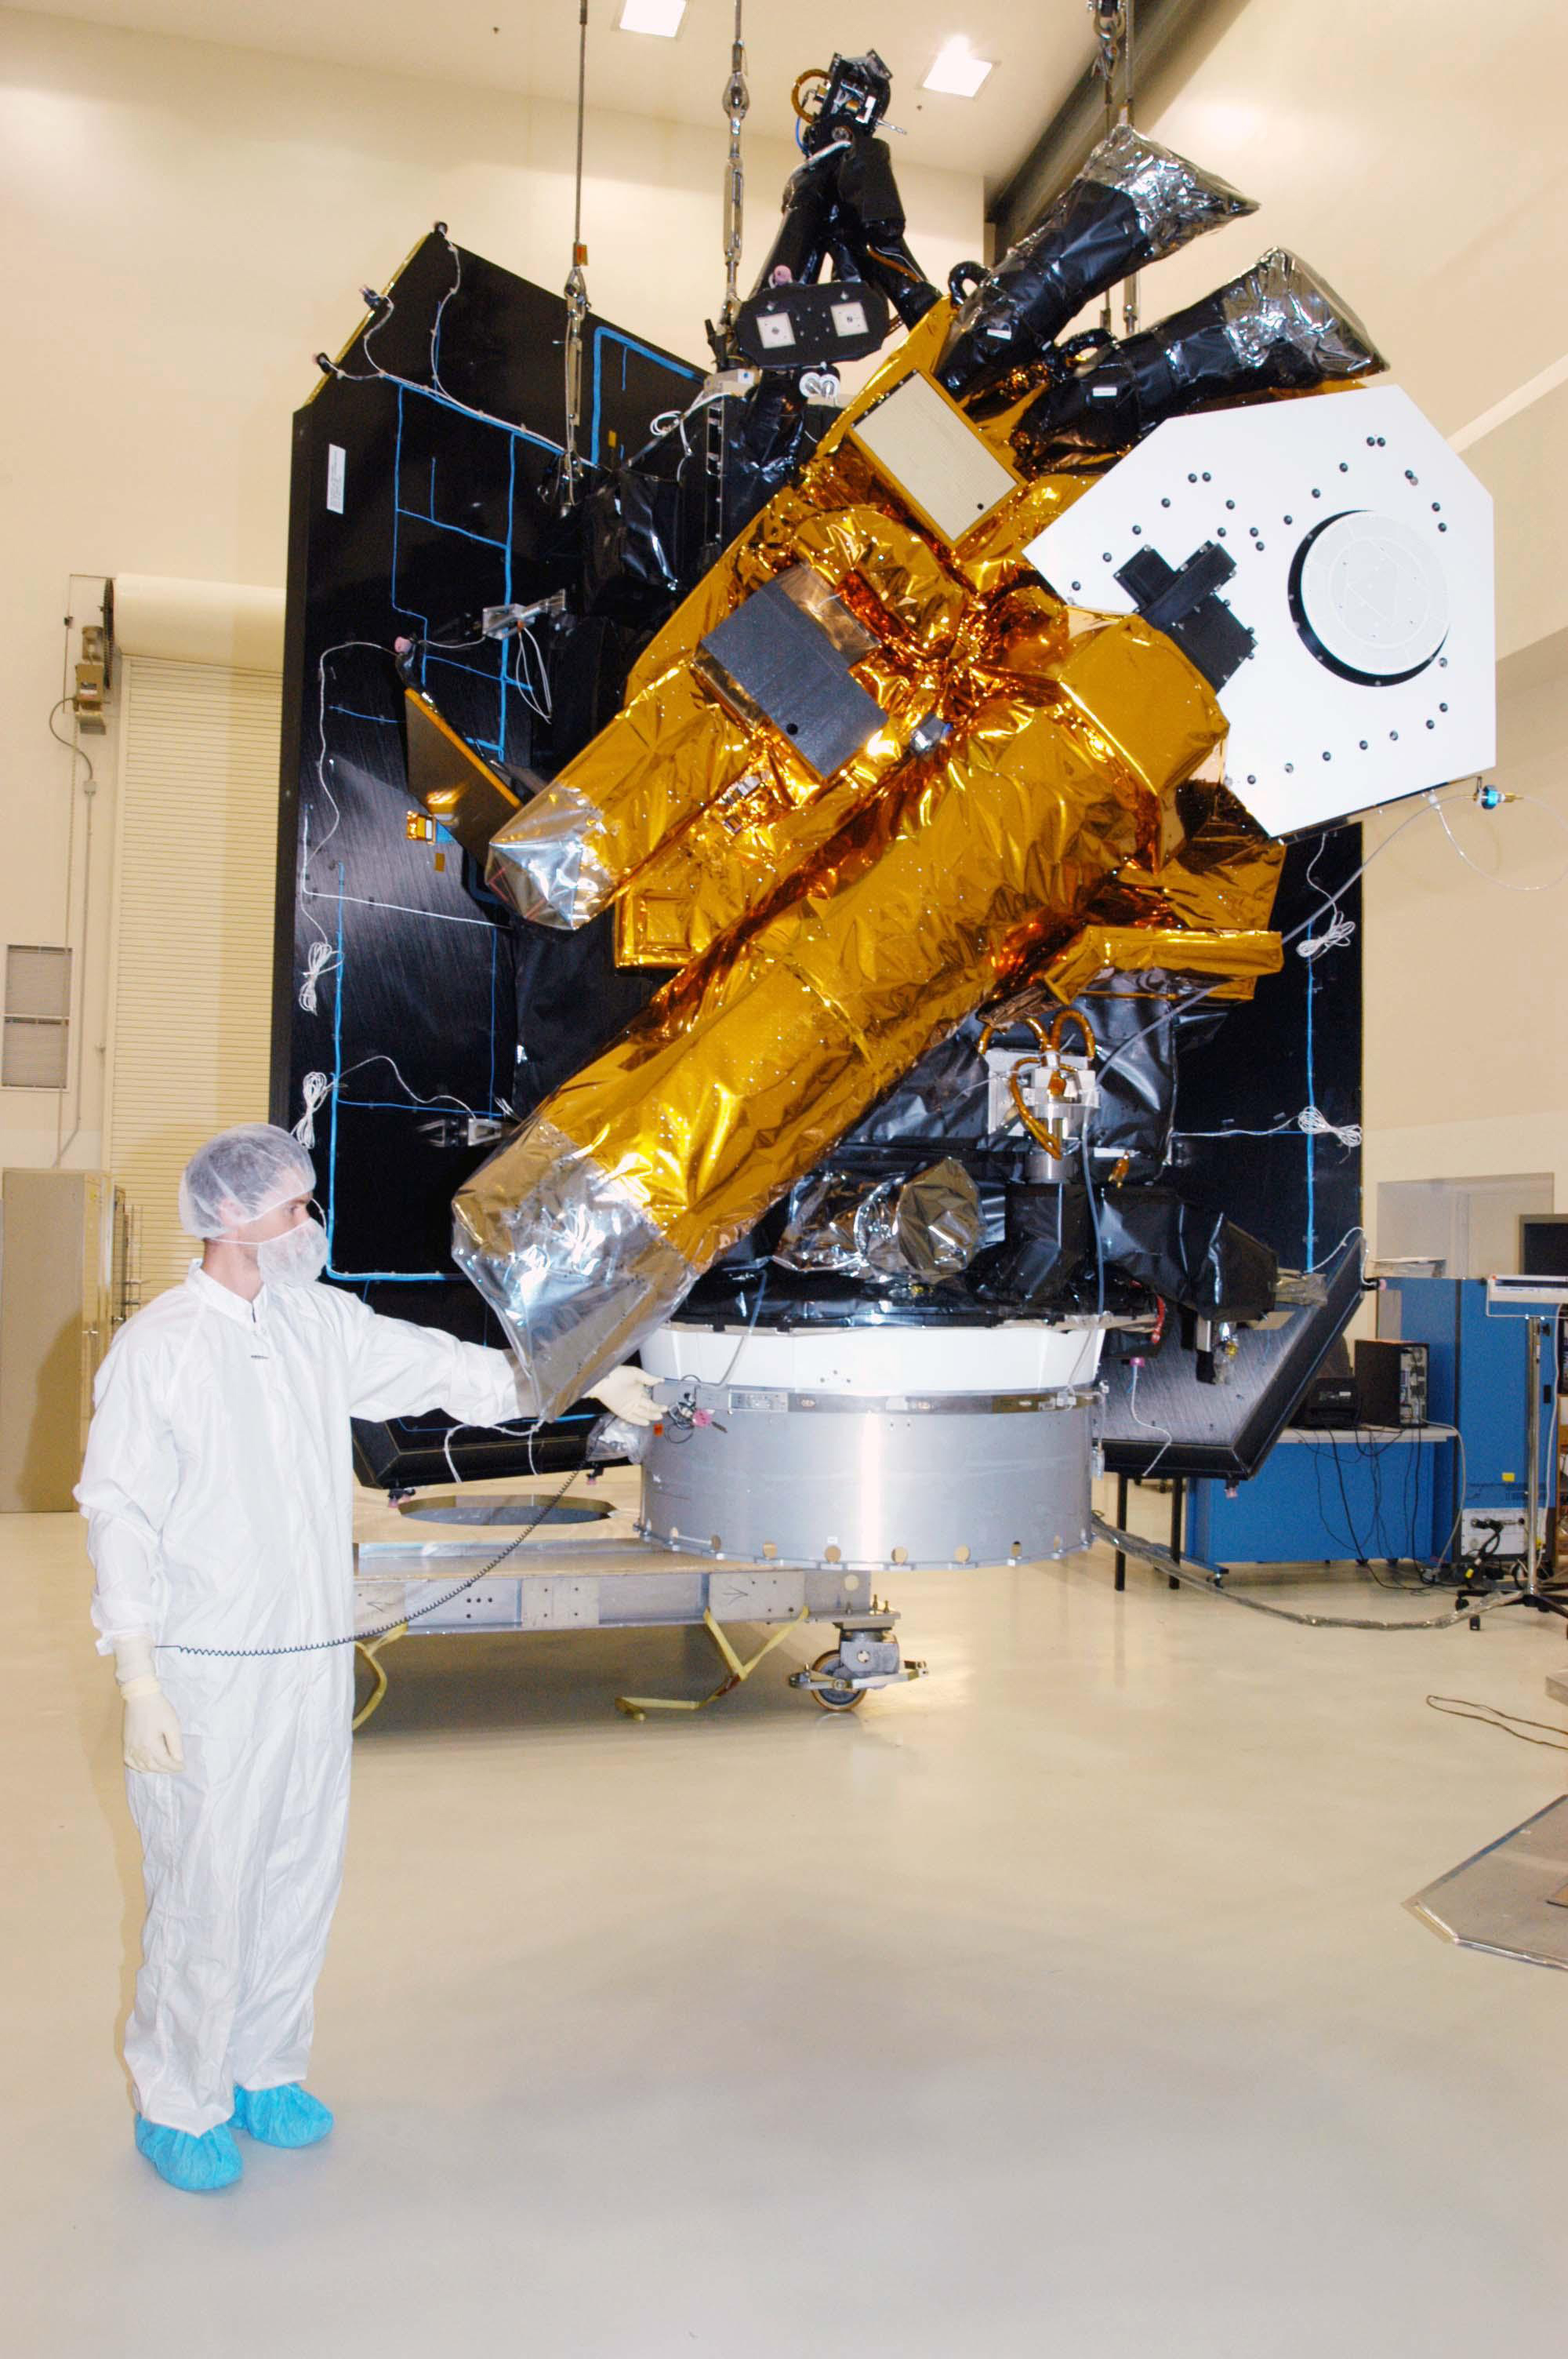 File:Deep impact clean room.jpg - Wikimedia Commons